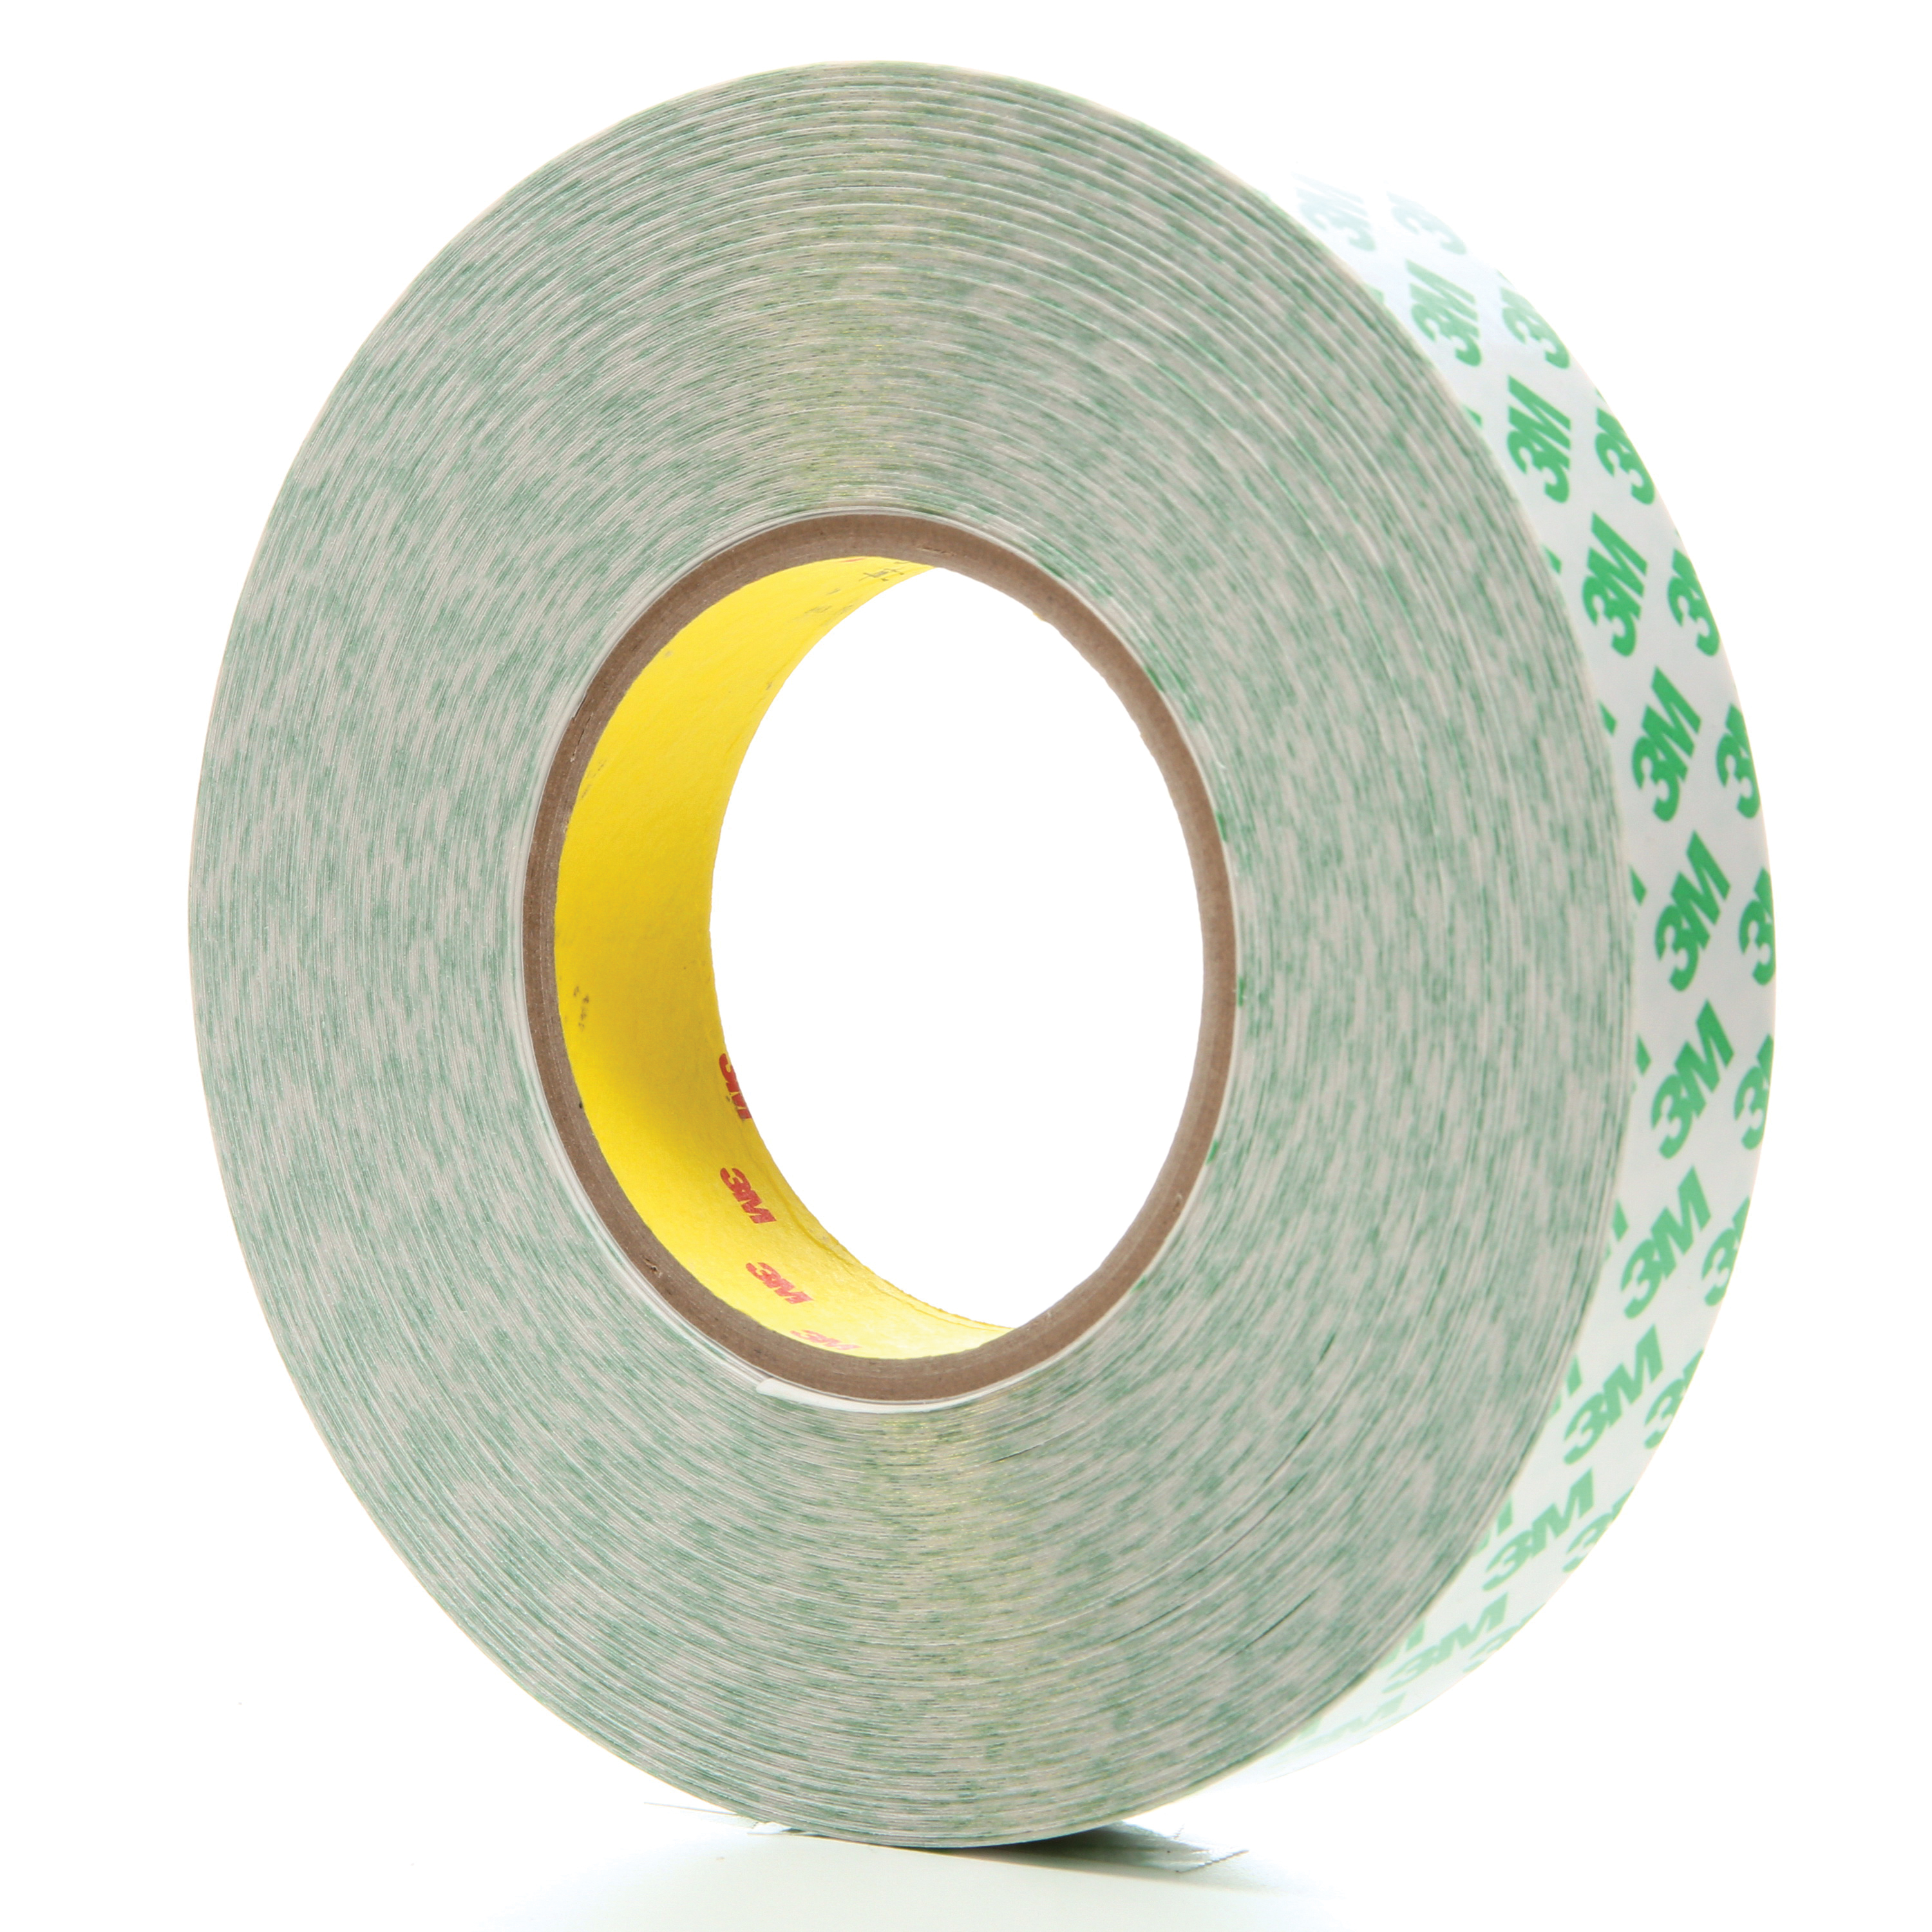 3M™ VHB™ 021200-56002 4611 Double Sided Foam Tape, 36 yd L x 3/4 in W, 0.045 in THK, General Purpose Acrylic Adhesive, Acrylic Backing, Dark Gray